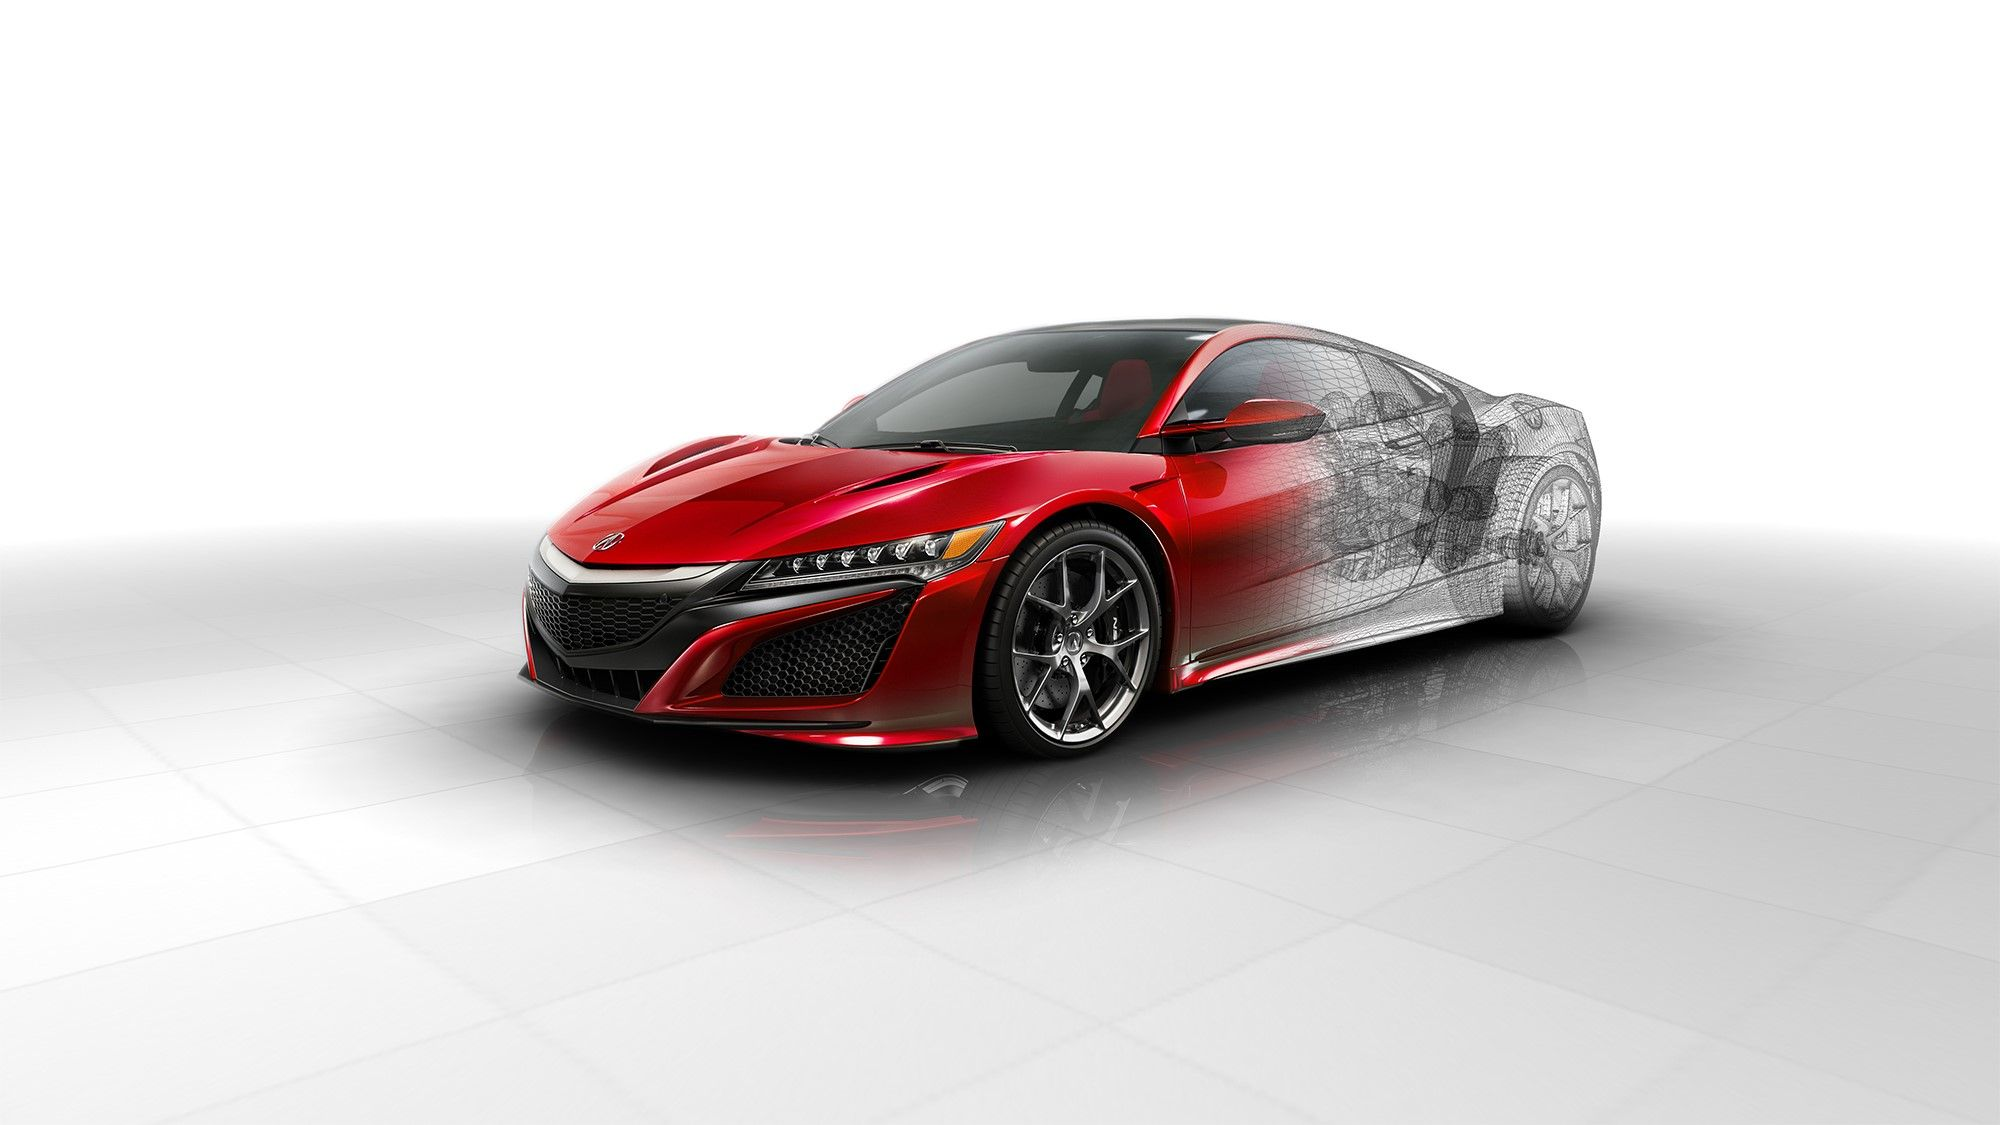 New Technical Details of the Next Generation NSX Acura